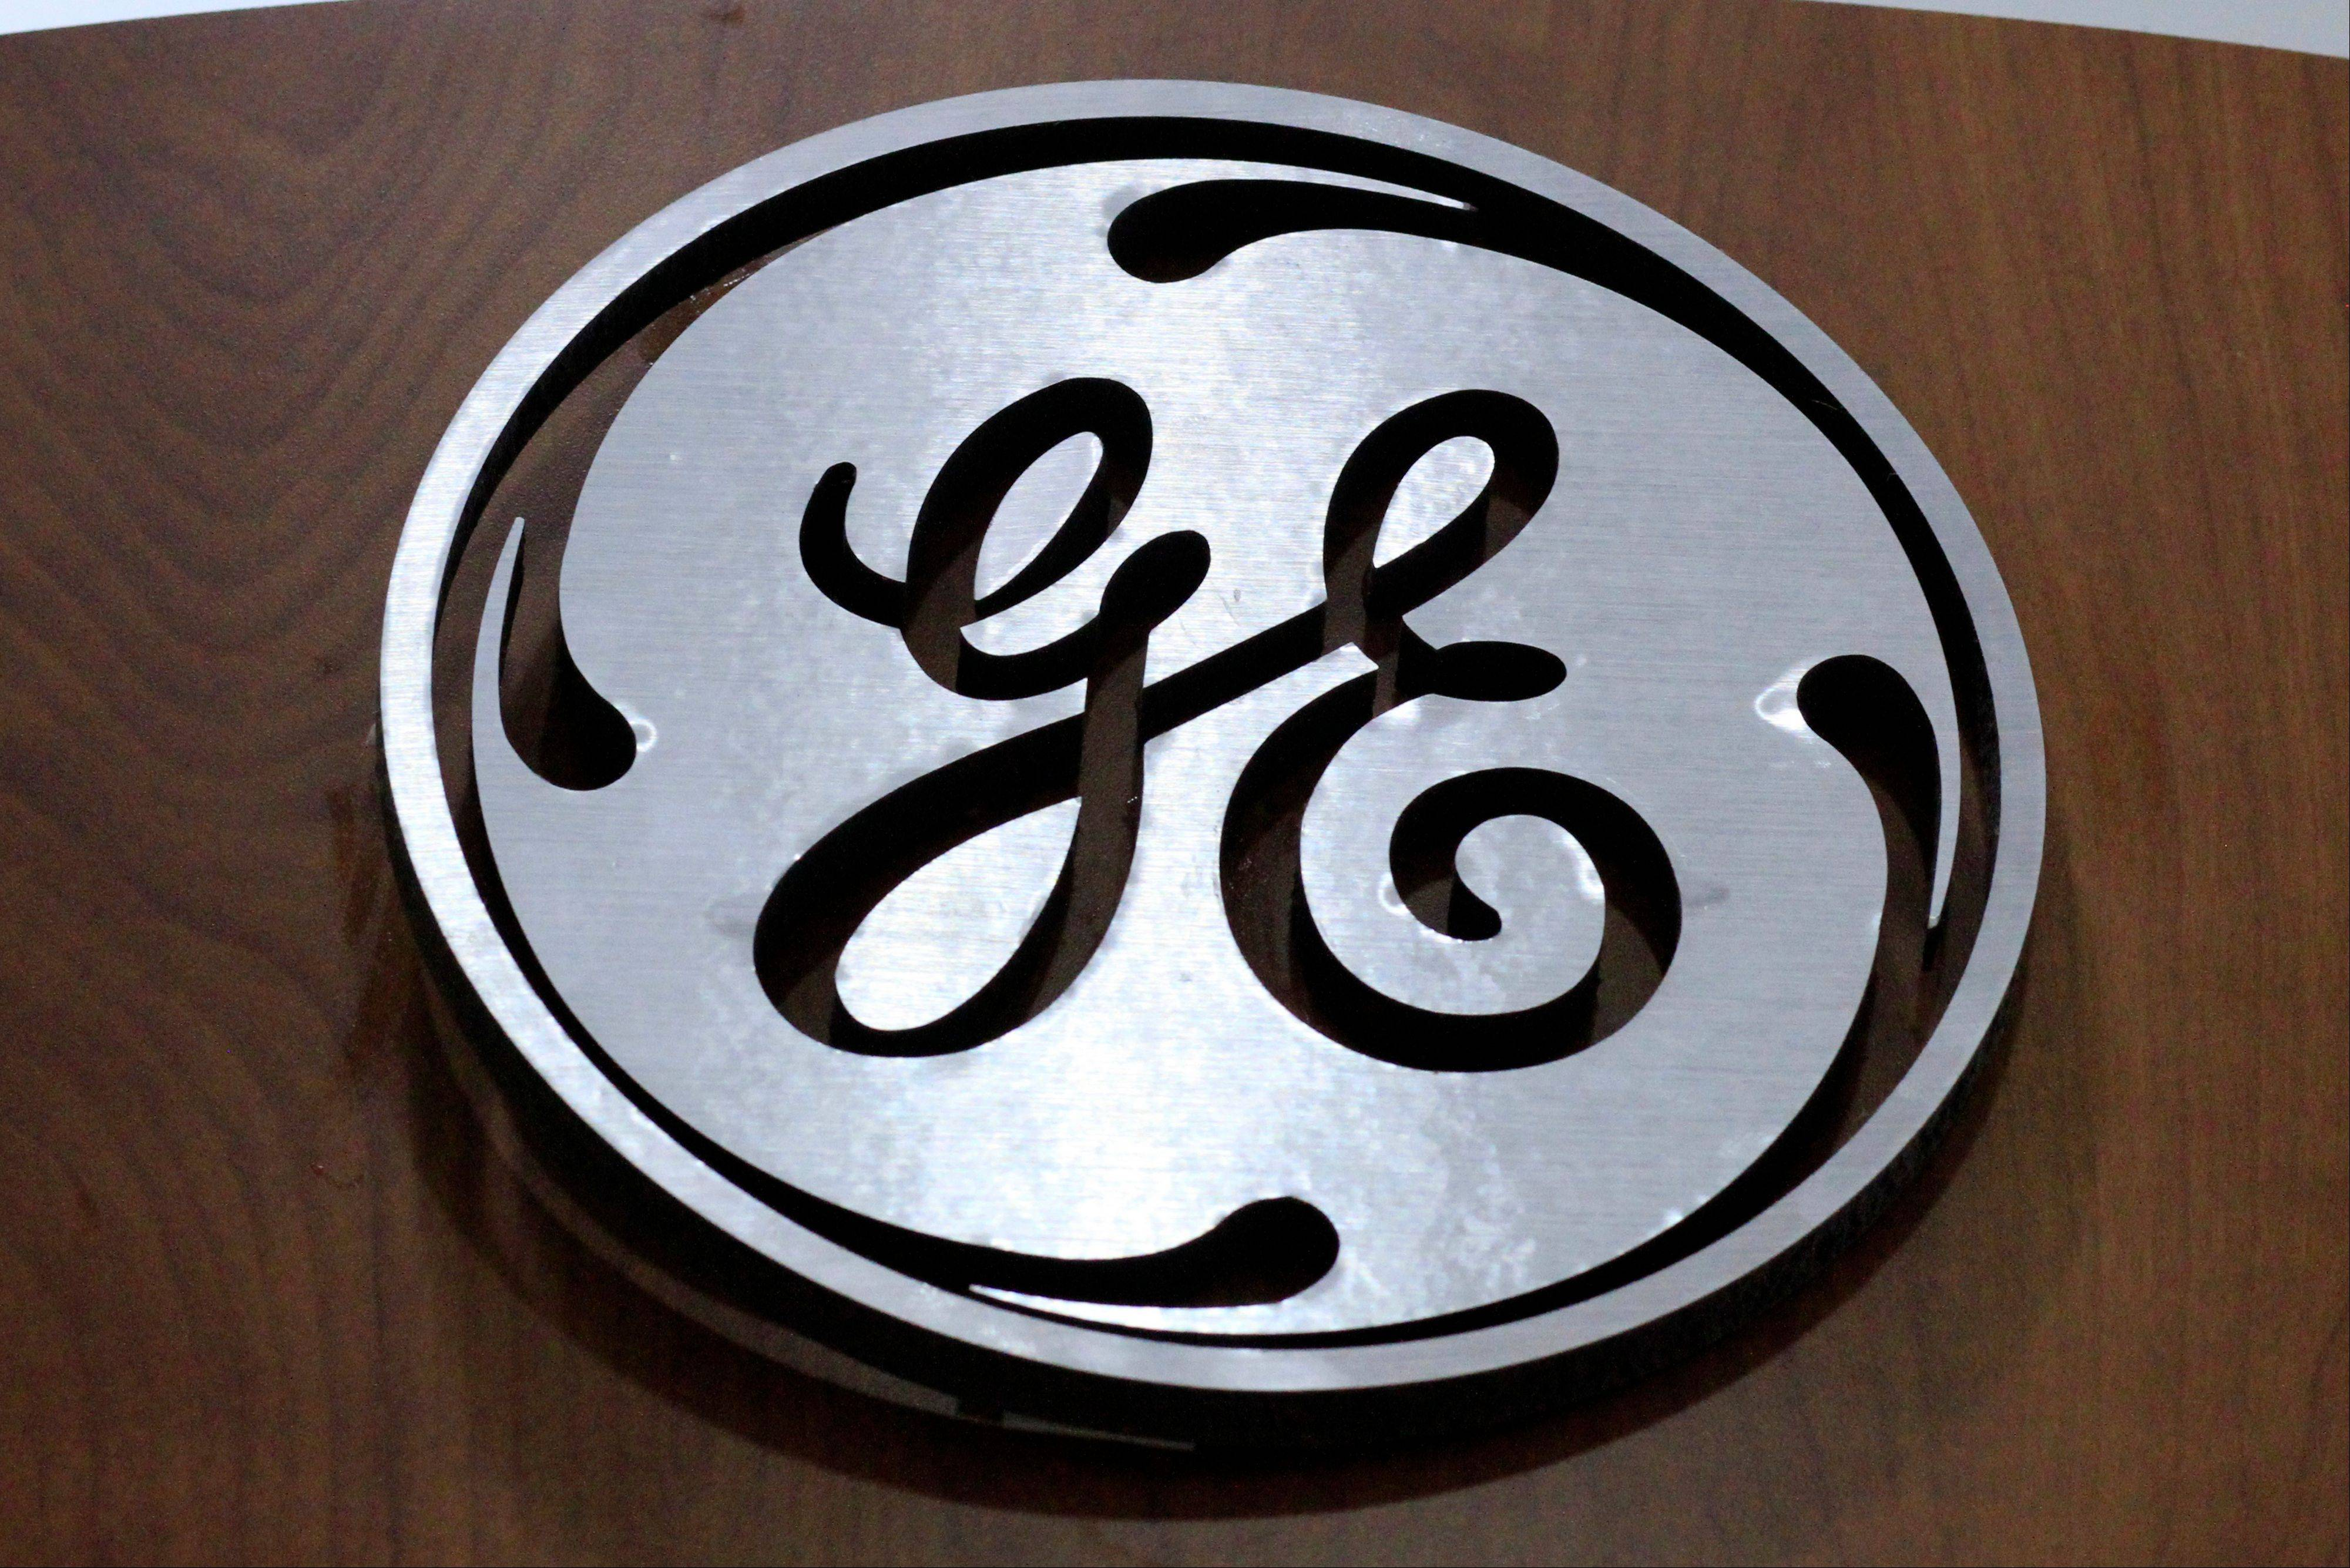 A General Electric logo is displayed on a kitchen appliances Thuirsday in an H.H. Gregg store in Cranberry Township, Pa. General Electric Co. reported quarterly financial results Friday and its stock slumped 62 cents, or 2.3 percent, to $26.58 after profit margins in the company's industrial unit fell short of its own targets.